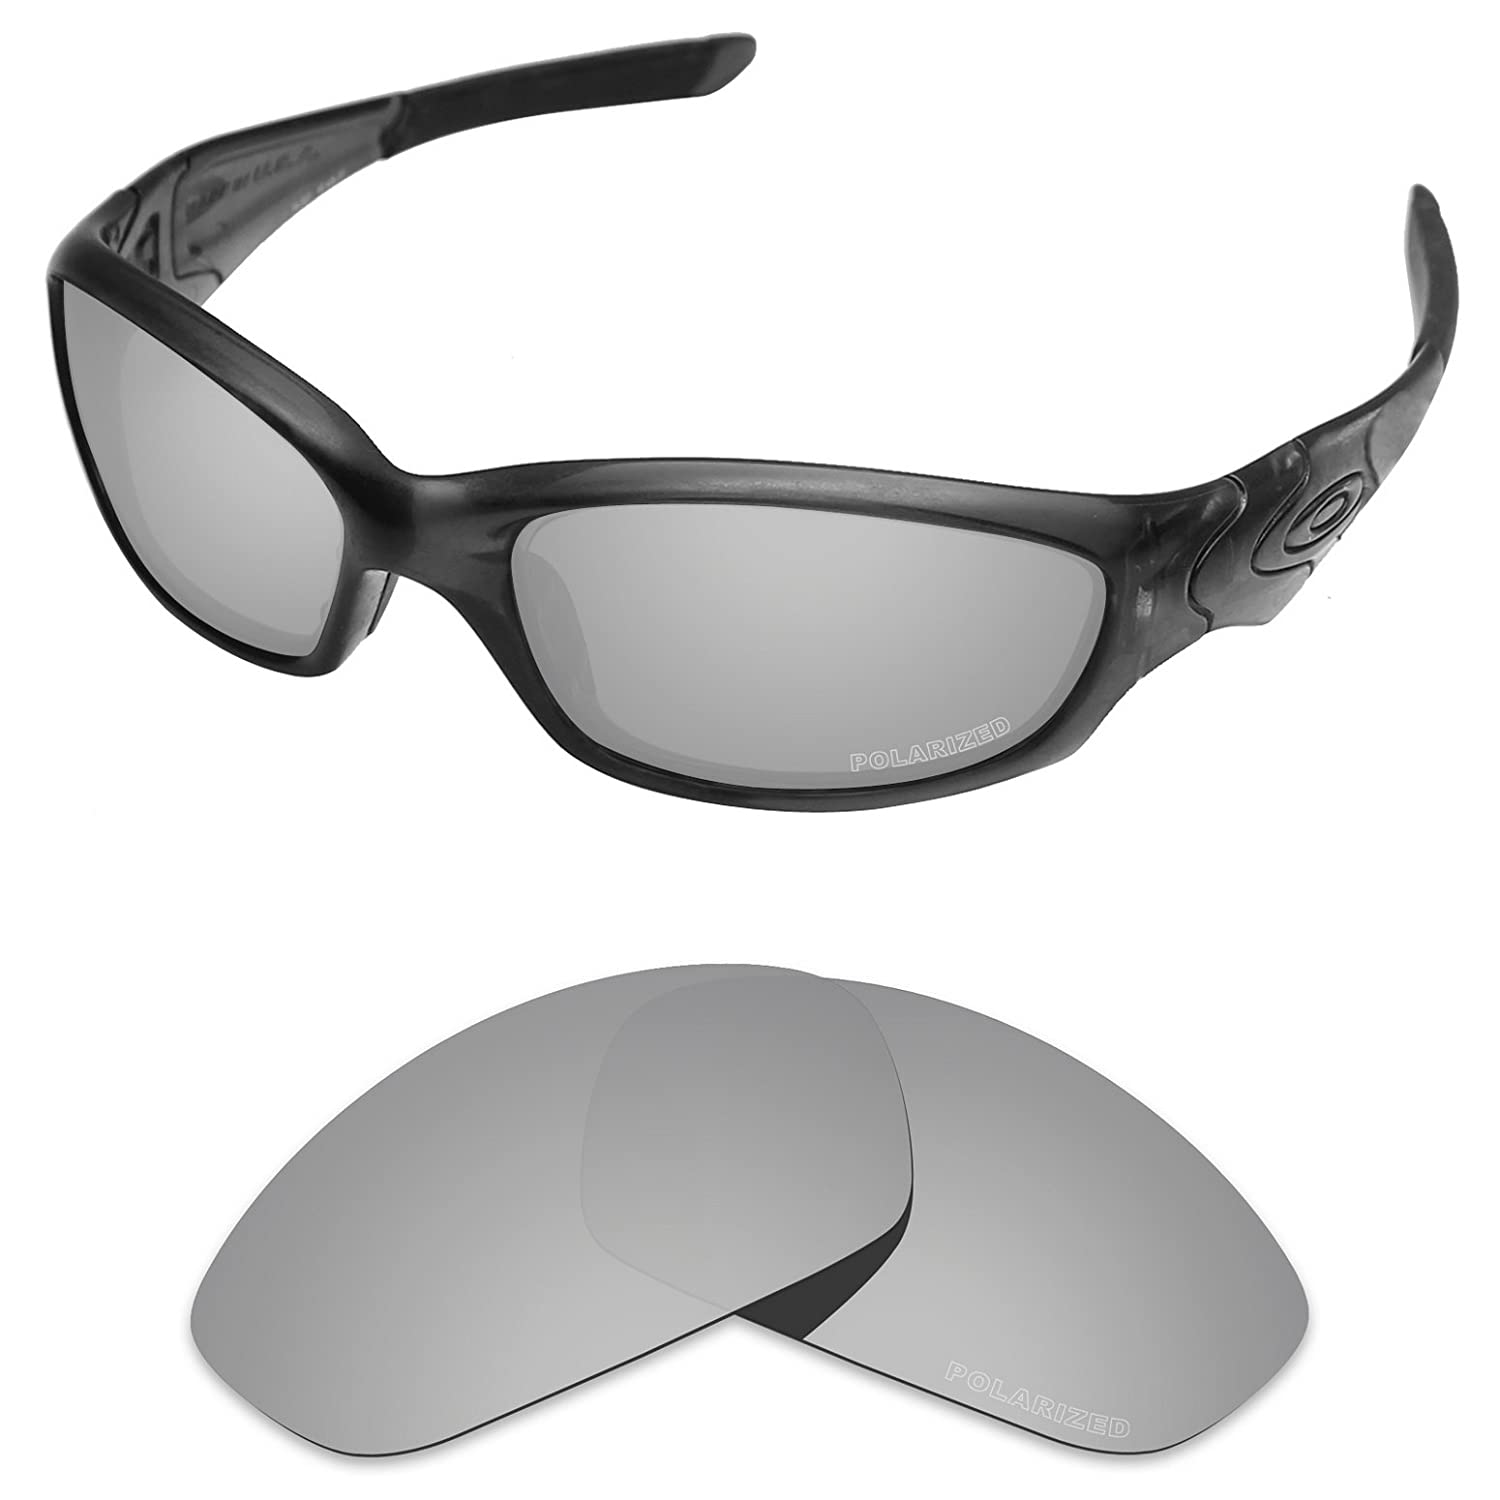 a60eab80739b9 Tintart Performance Replacement Lenses for Oakley Straight Jacket 2007  Sunglass Polarized Etched STR171BLACK13 larger image